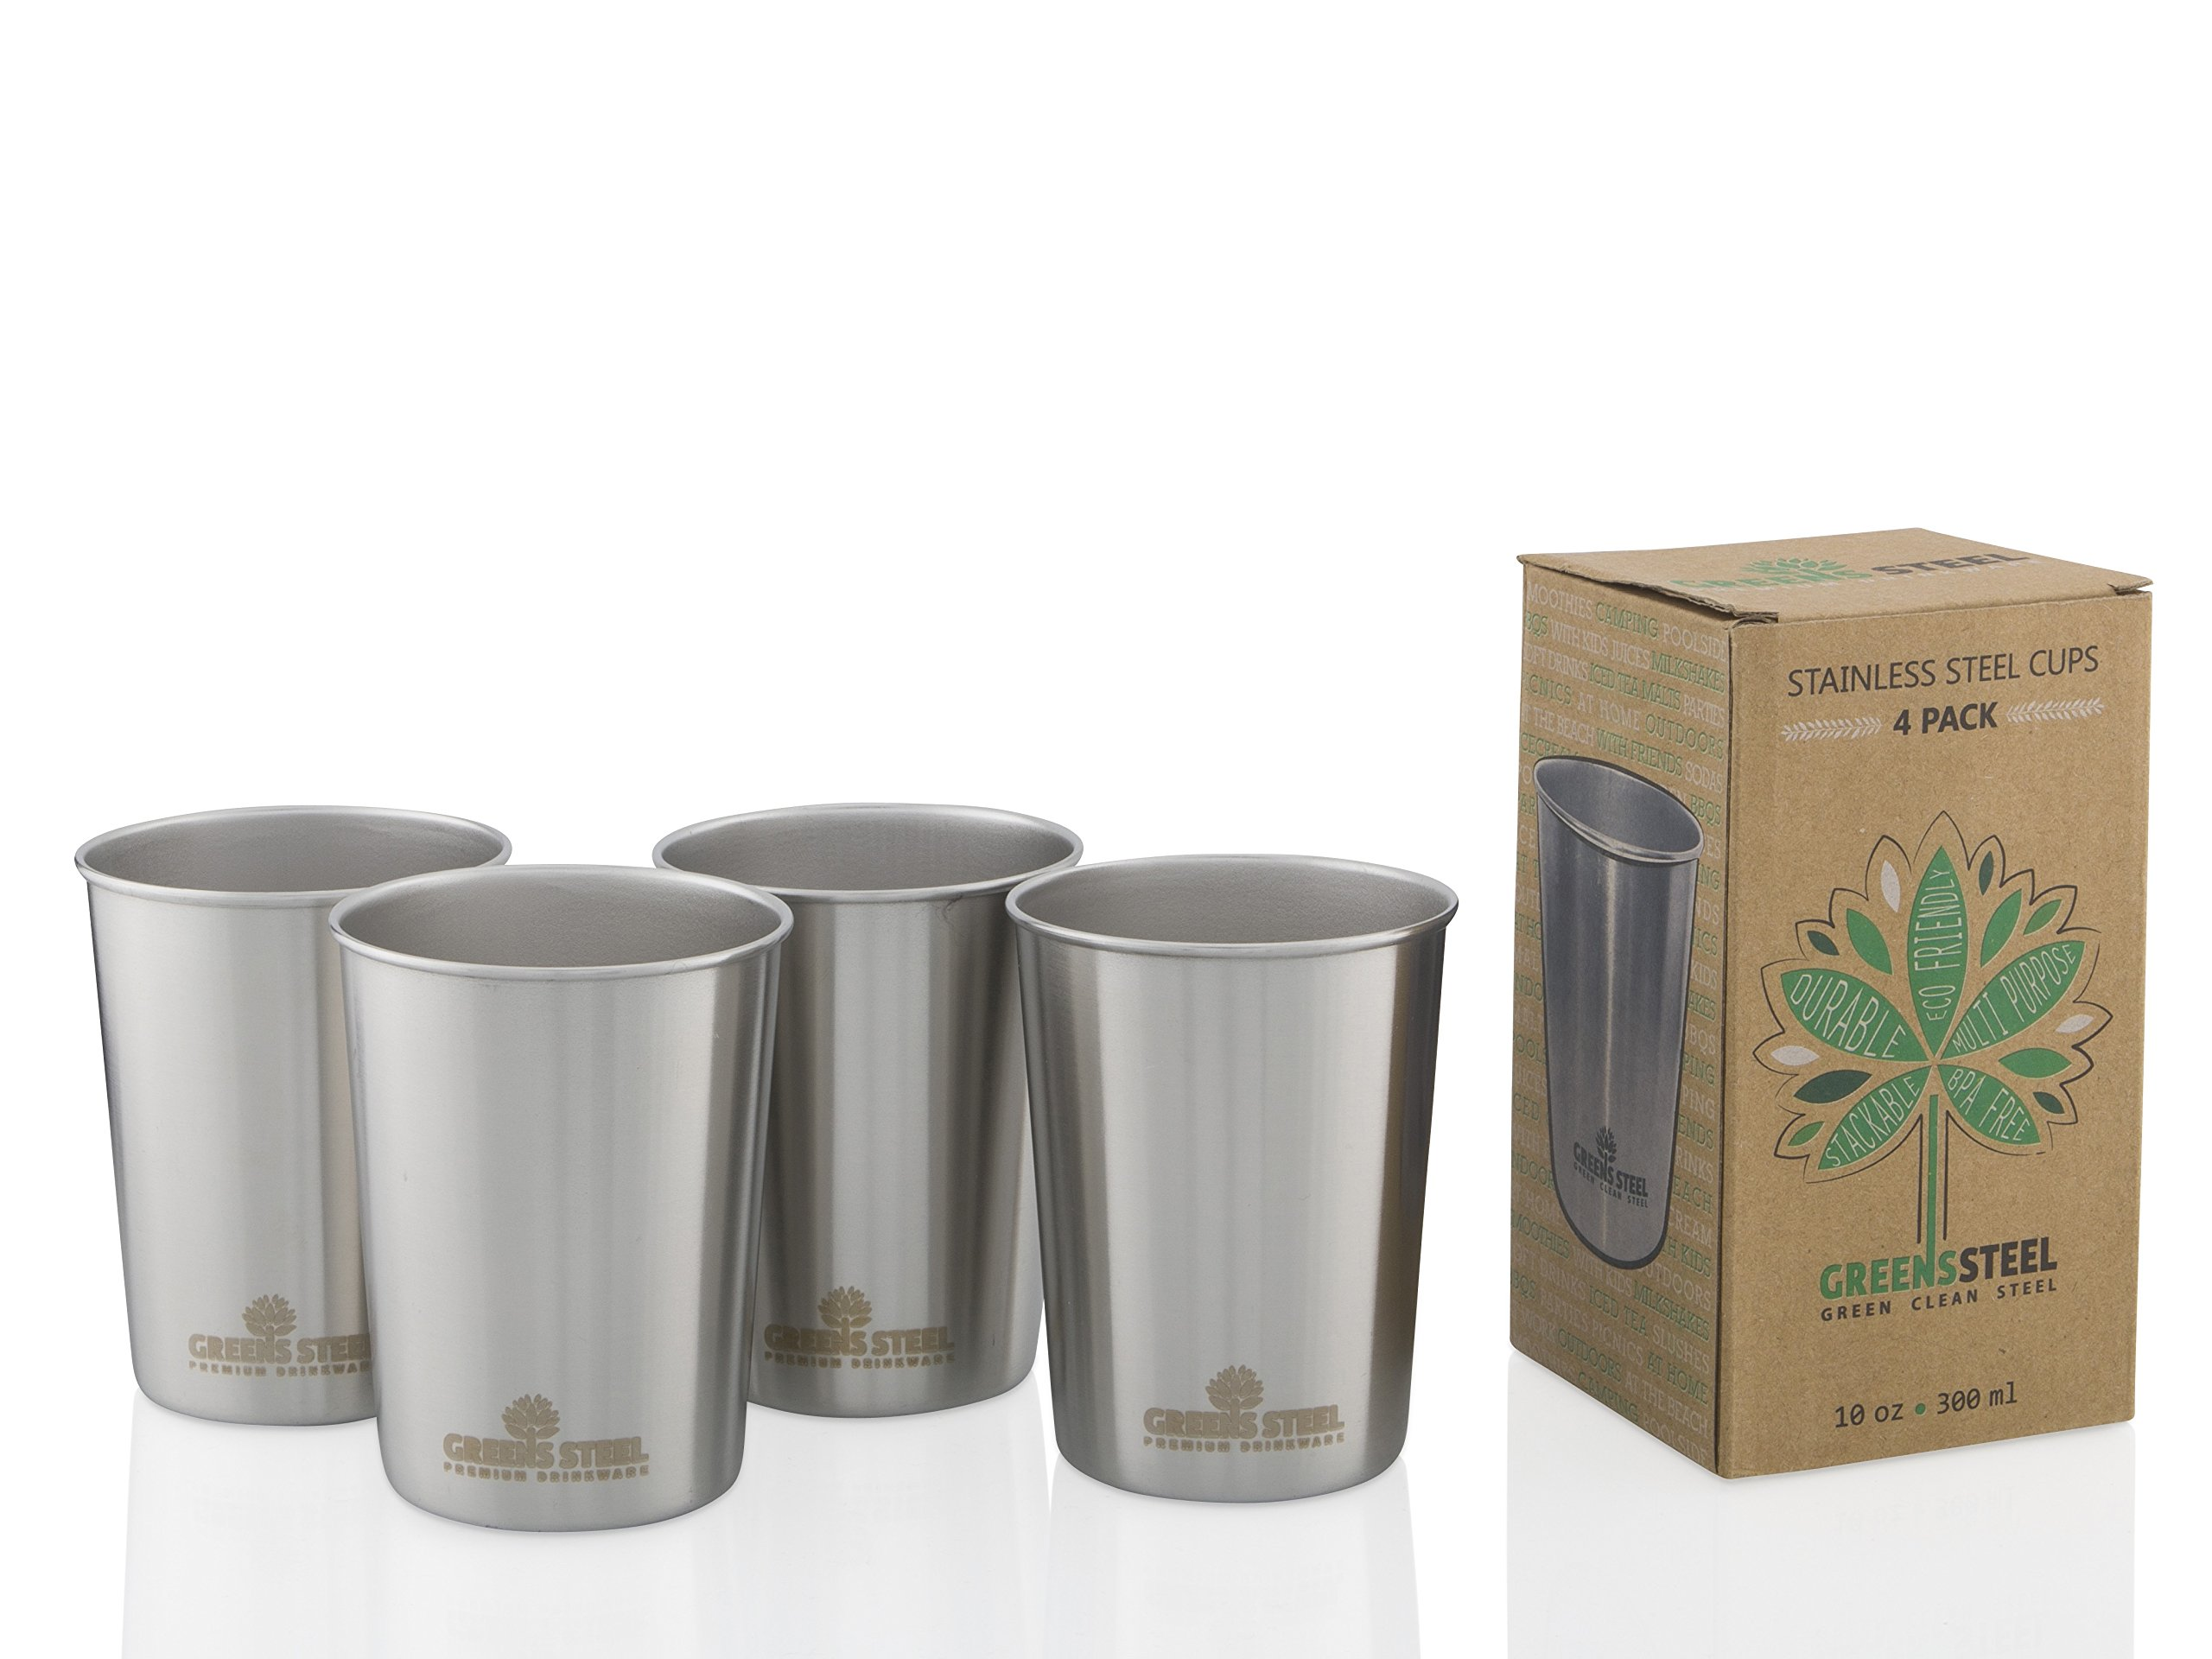 10oz Stainless Steel Cups - Metal Cups For Kids - BPA free (4 Pack) by Greens Steel (Image #1)